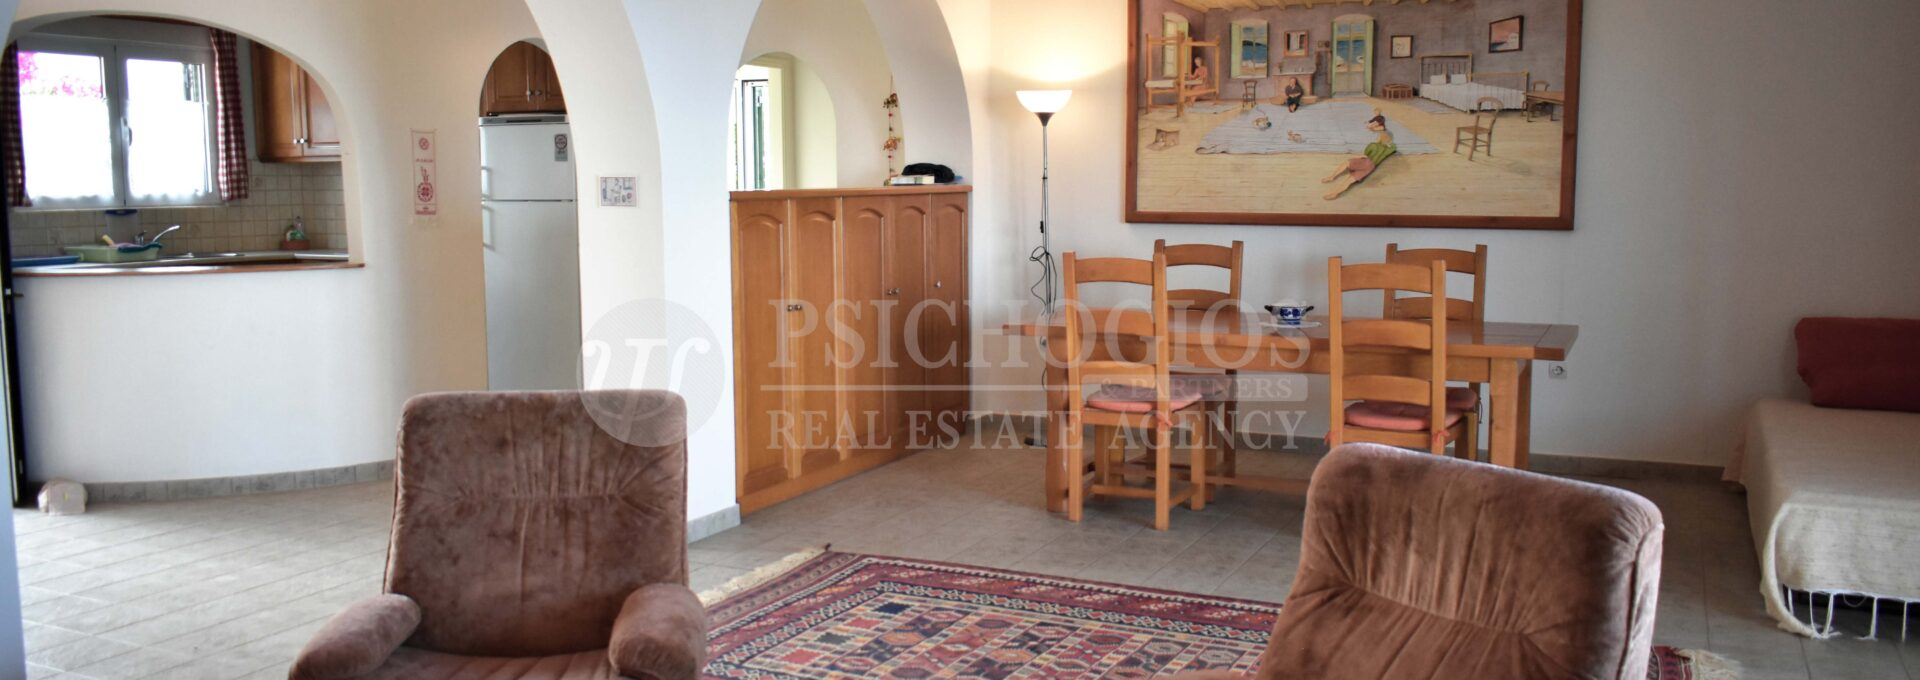 for_sale_house_223_square_meters_plot_730_square_meters_view_to_the_sea_ermioni_greece (38)